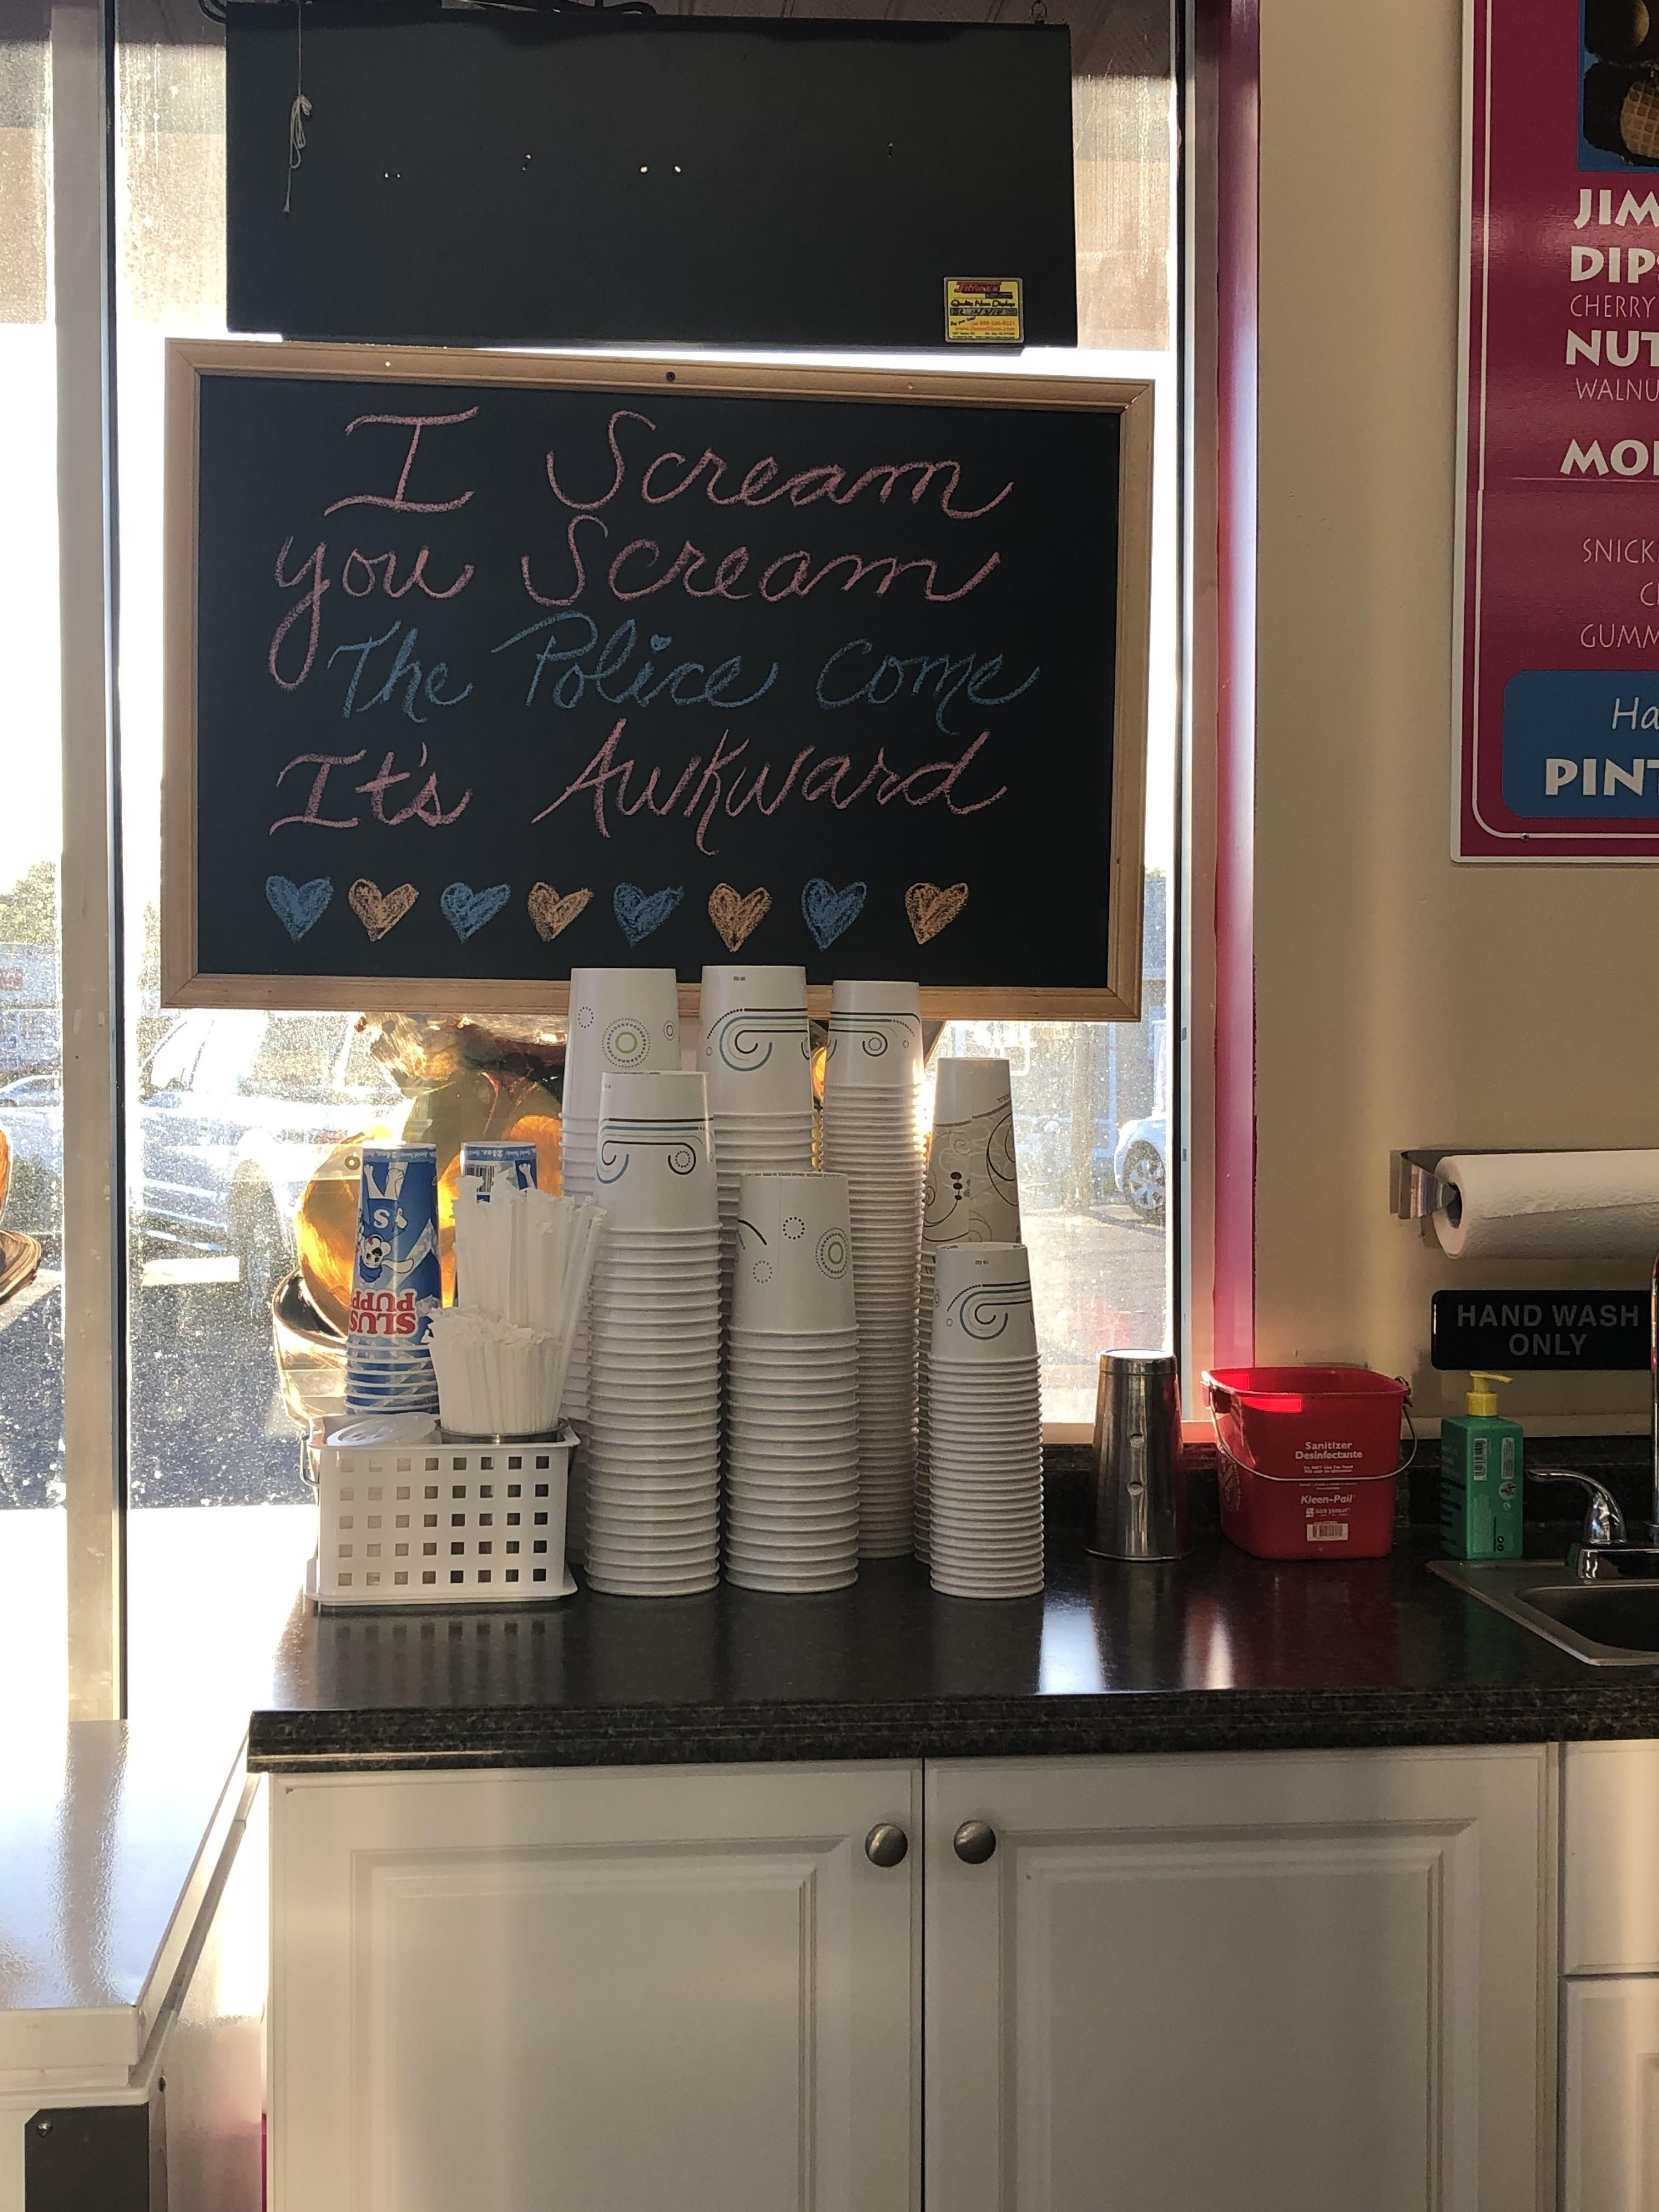 This sign at the local ice cream place